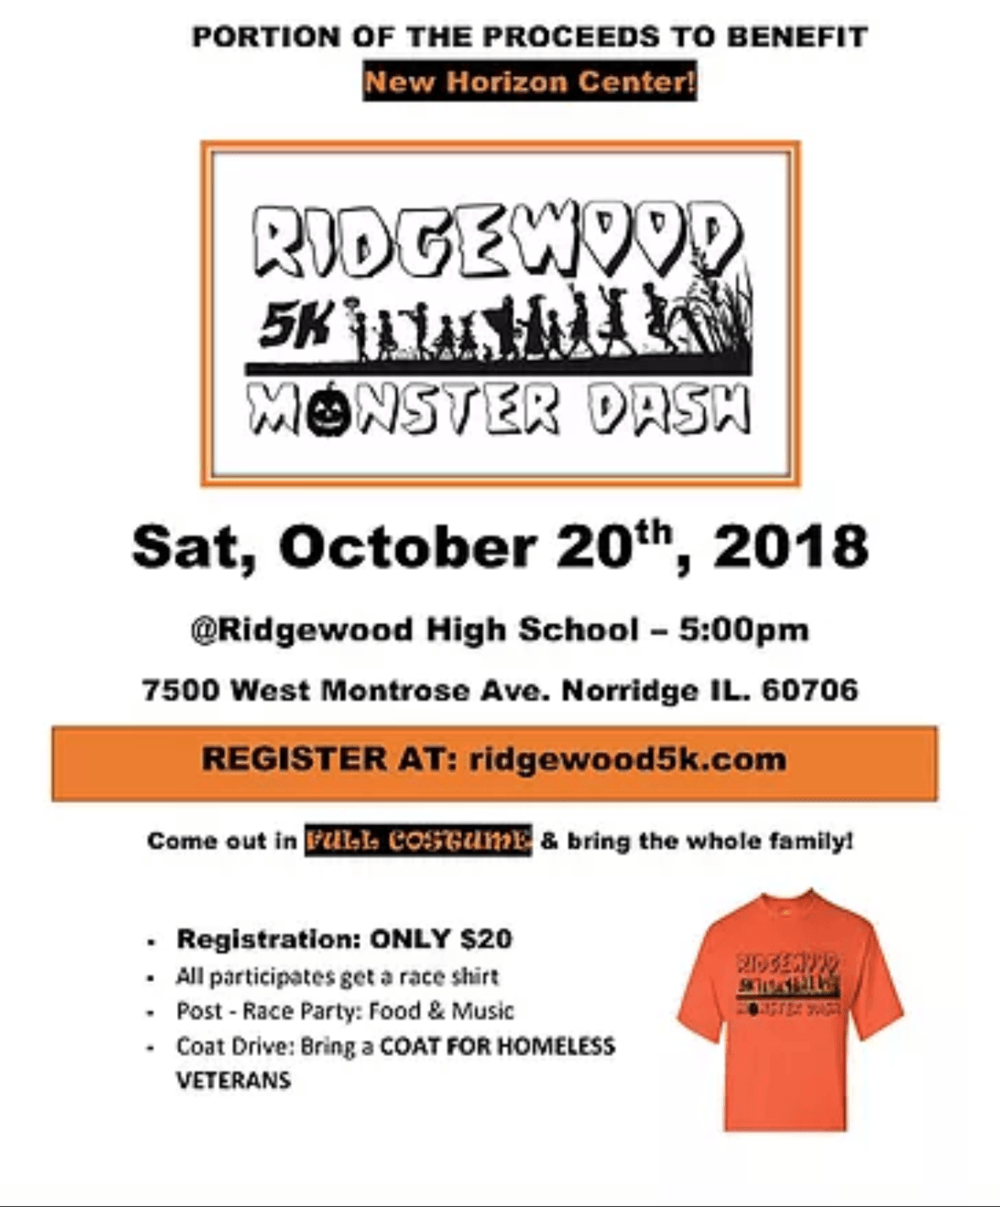 Ridgewood Monster Dash